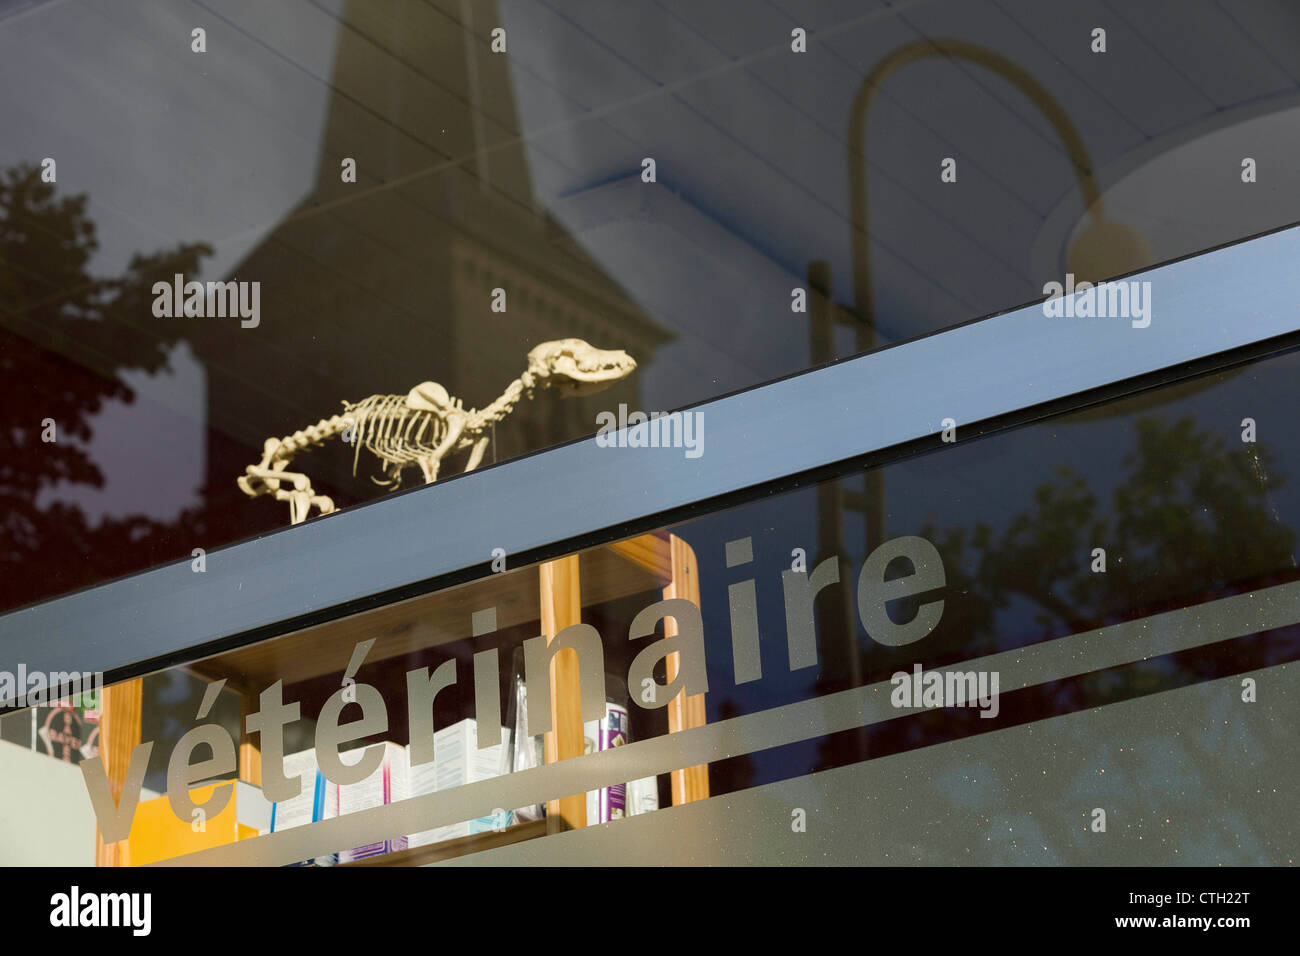 Skeleton of a dog and inscription 'Véterinaire', french for veterinarian  in the window of a veterinary - Stock Image